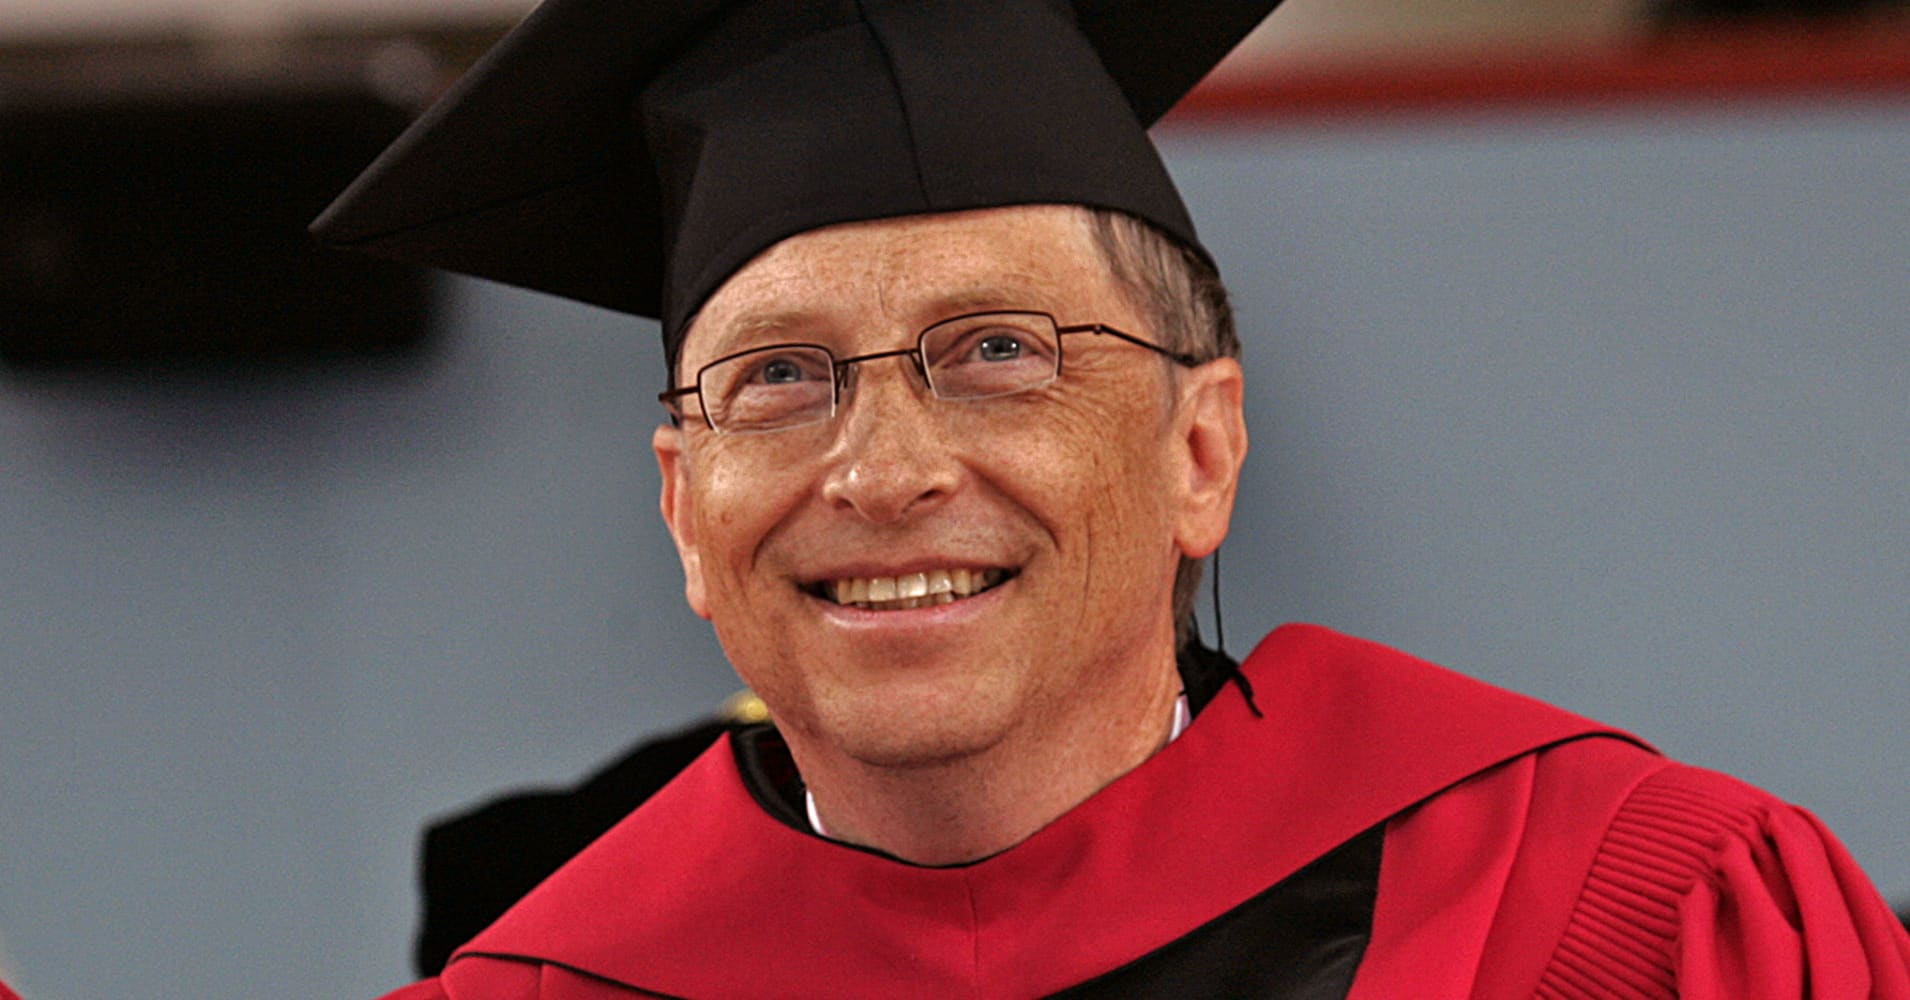 bill gates - photo #24